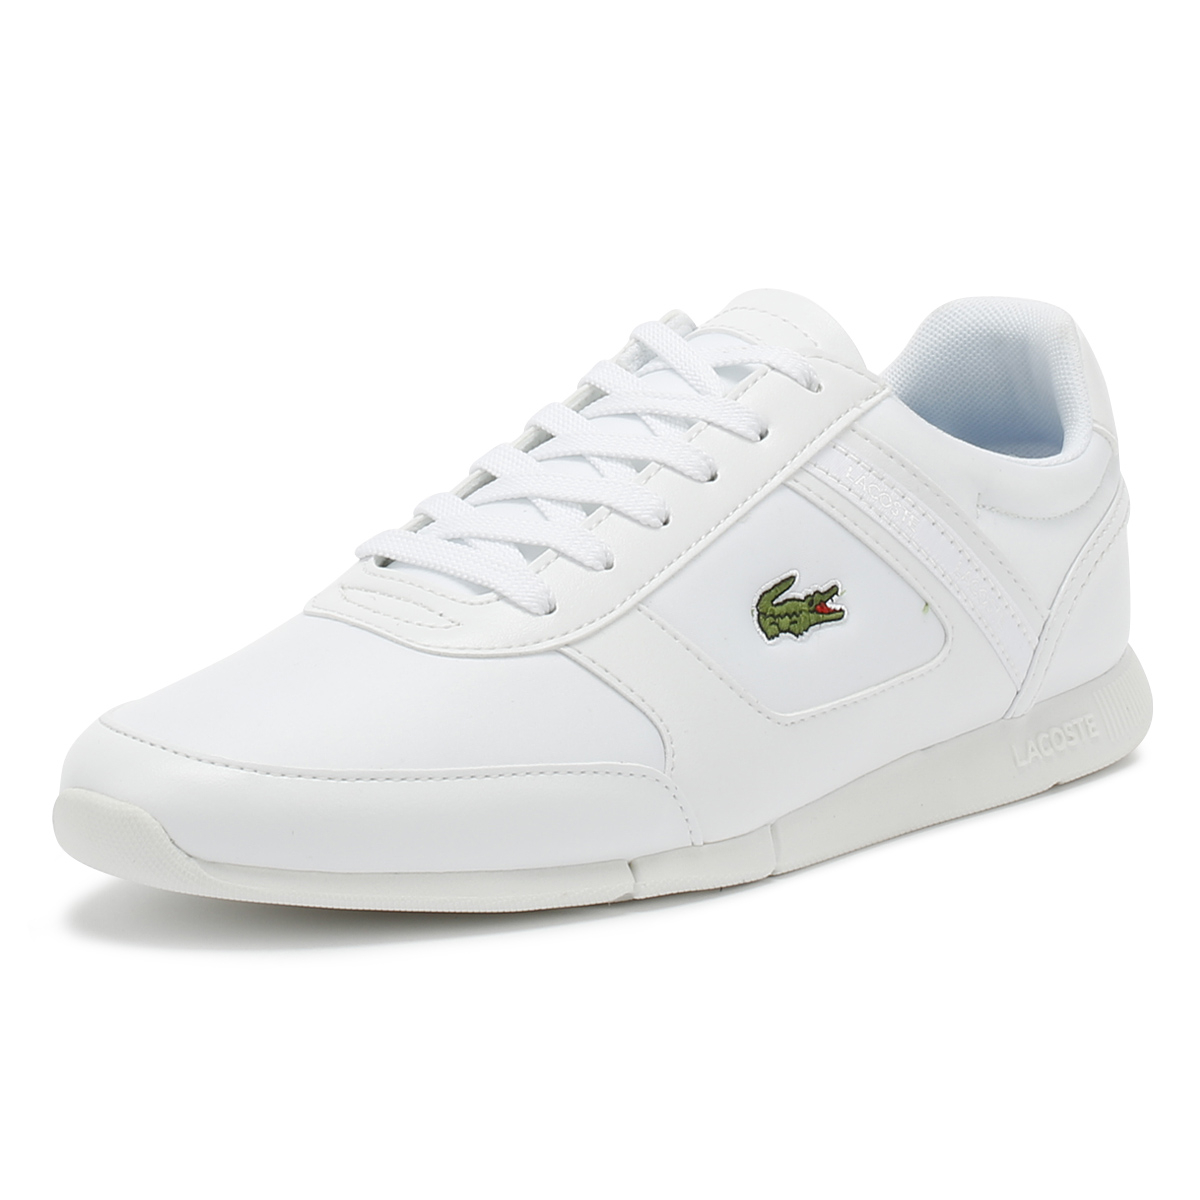 Lacoste   Herren Trainers Sport Weiß Menerva Sport Trainers 318 2 Lace Up Sport Casual Schuhes 78b249